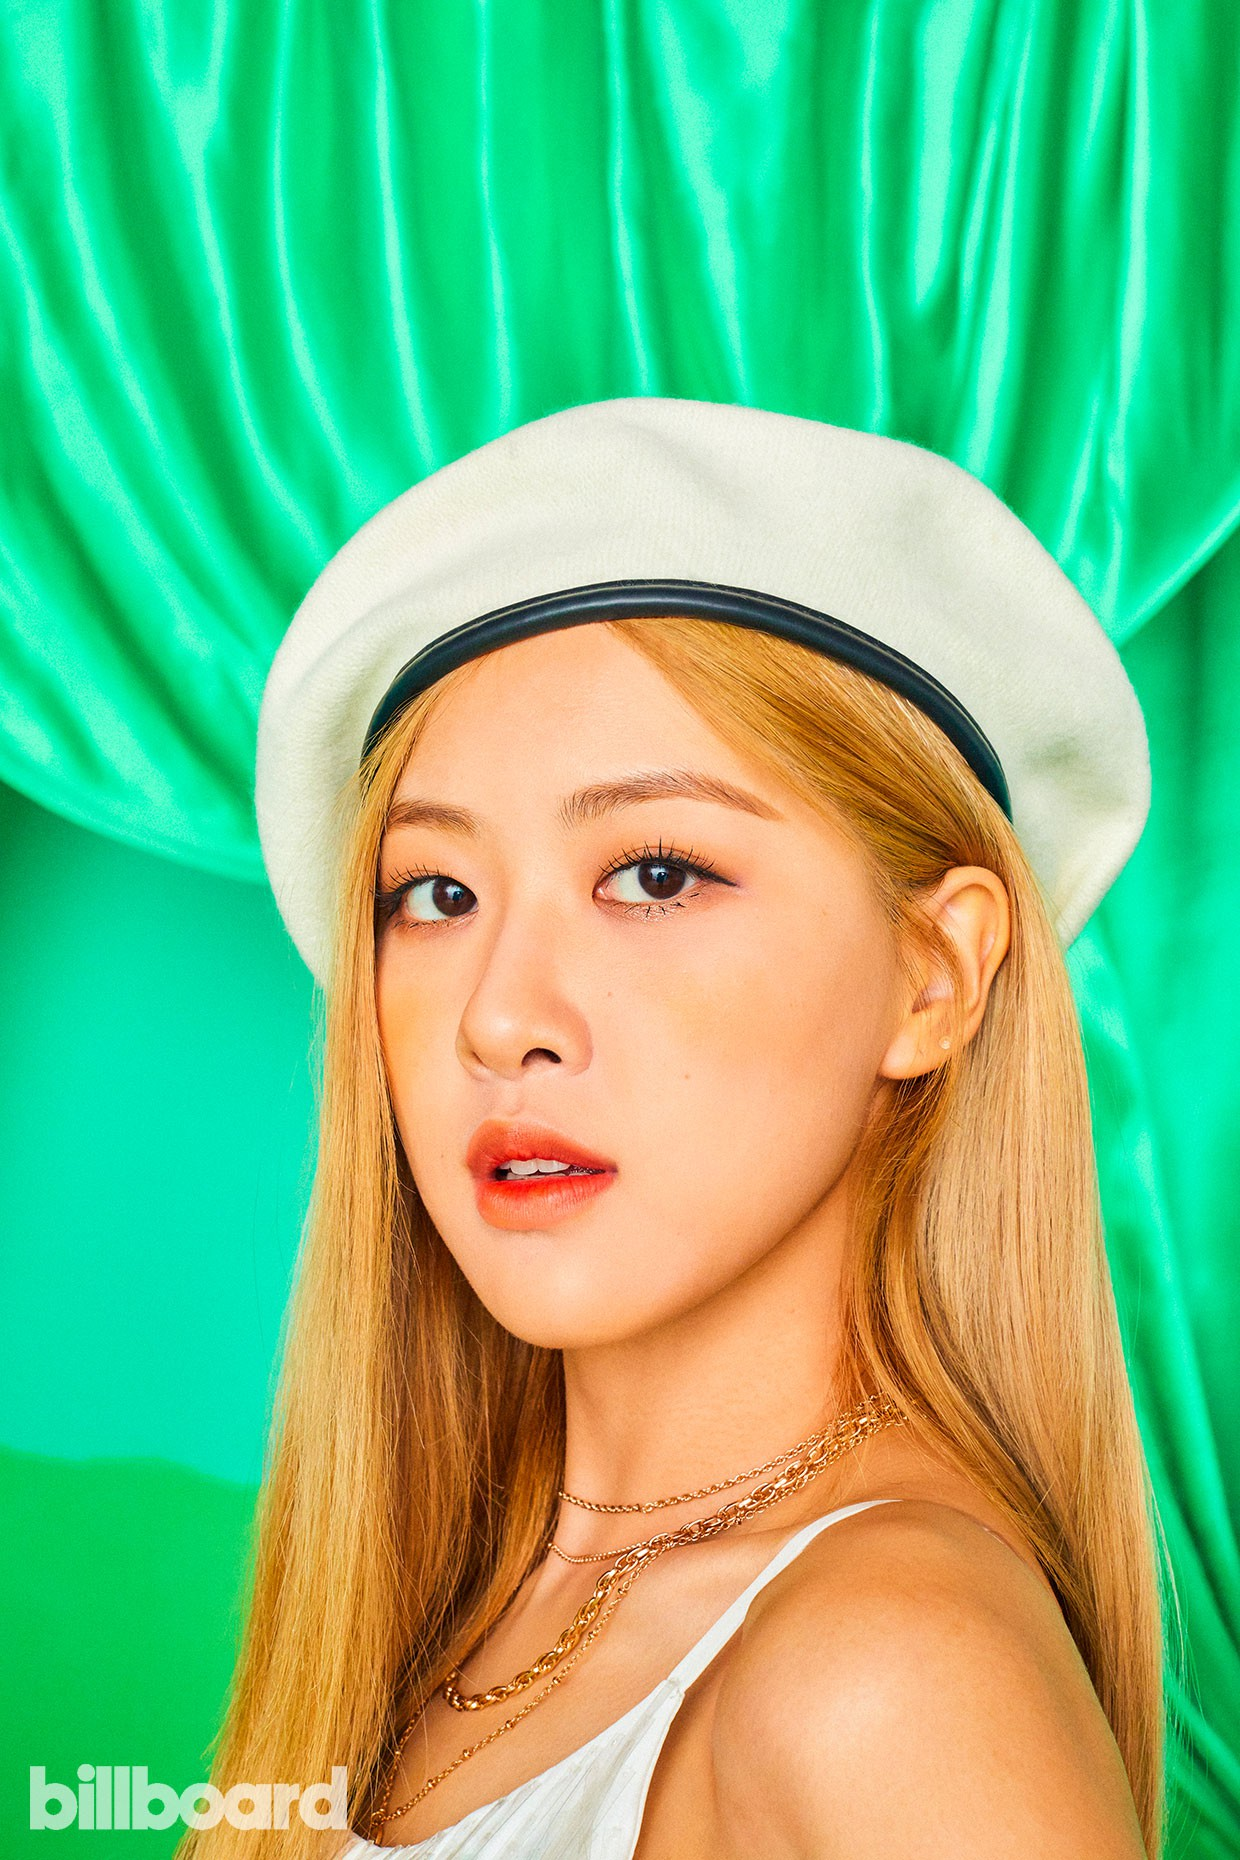 Black Pink was the first female Kpop girl to cover Billboard magazine's cover: beauty and charisma peak here! - Photo 9.